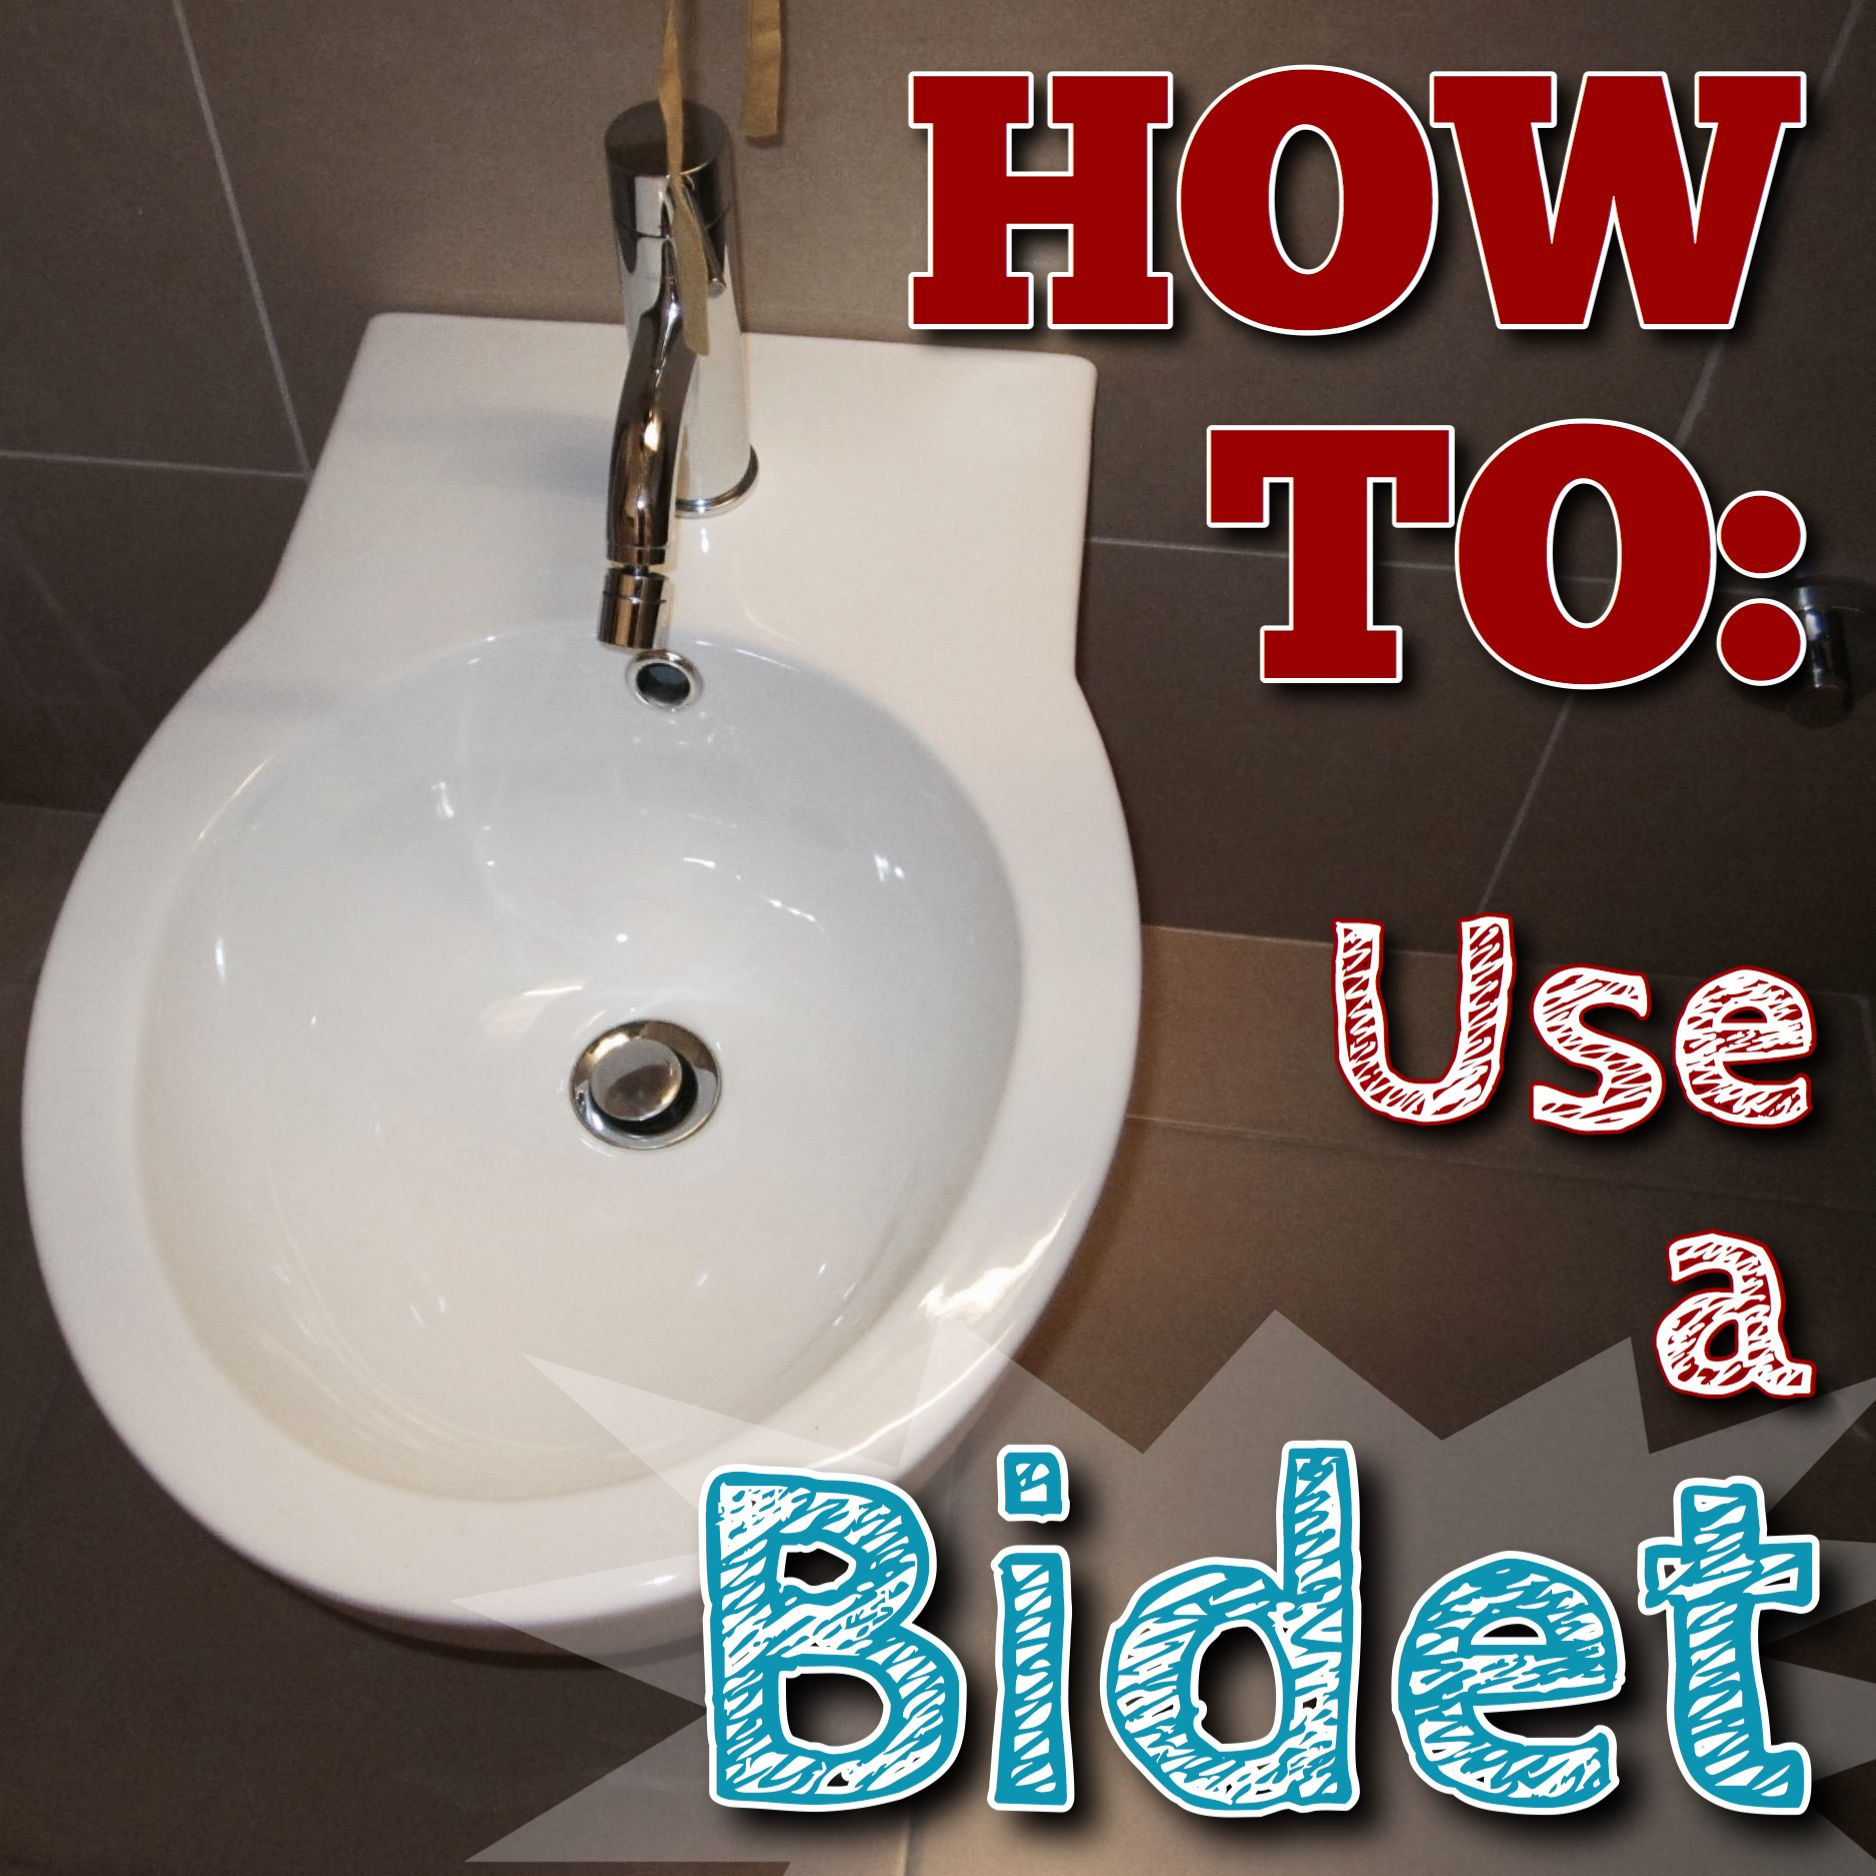 How to Use a Bidet | Travel planner, Bidet, Italy travel